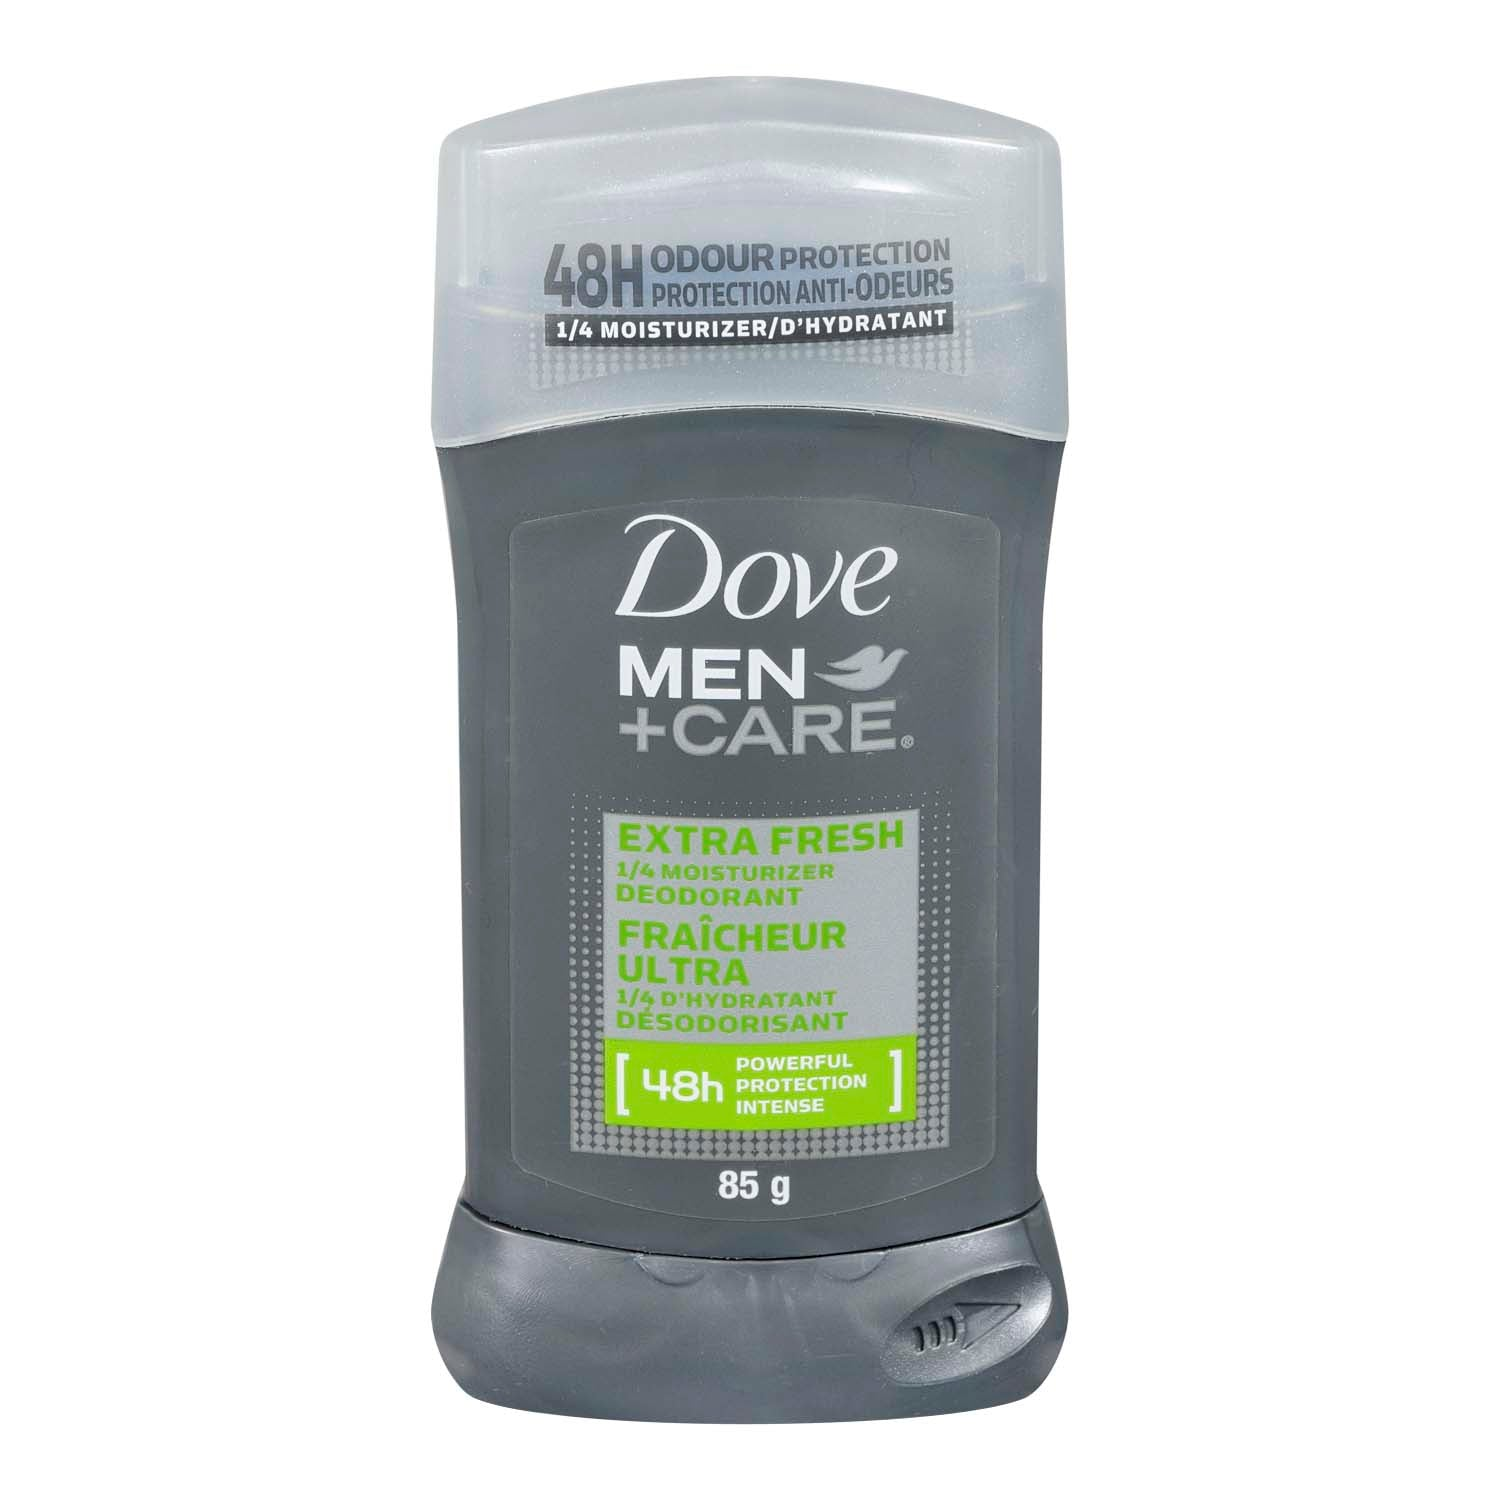 Dove Men+Care Deodorant 85g